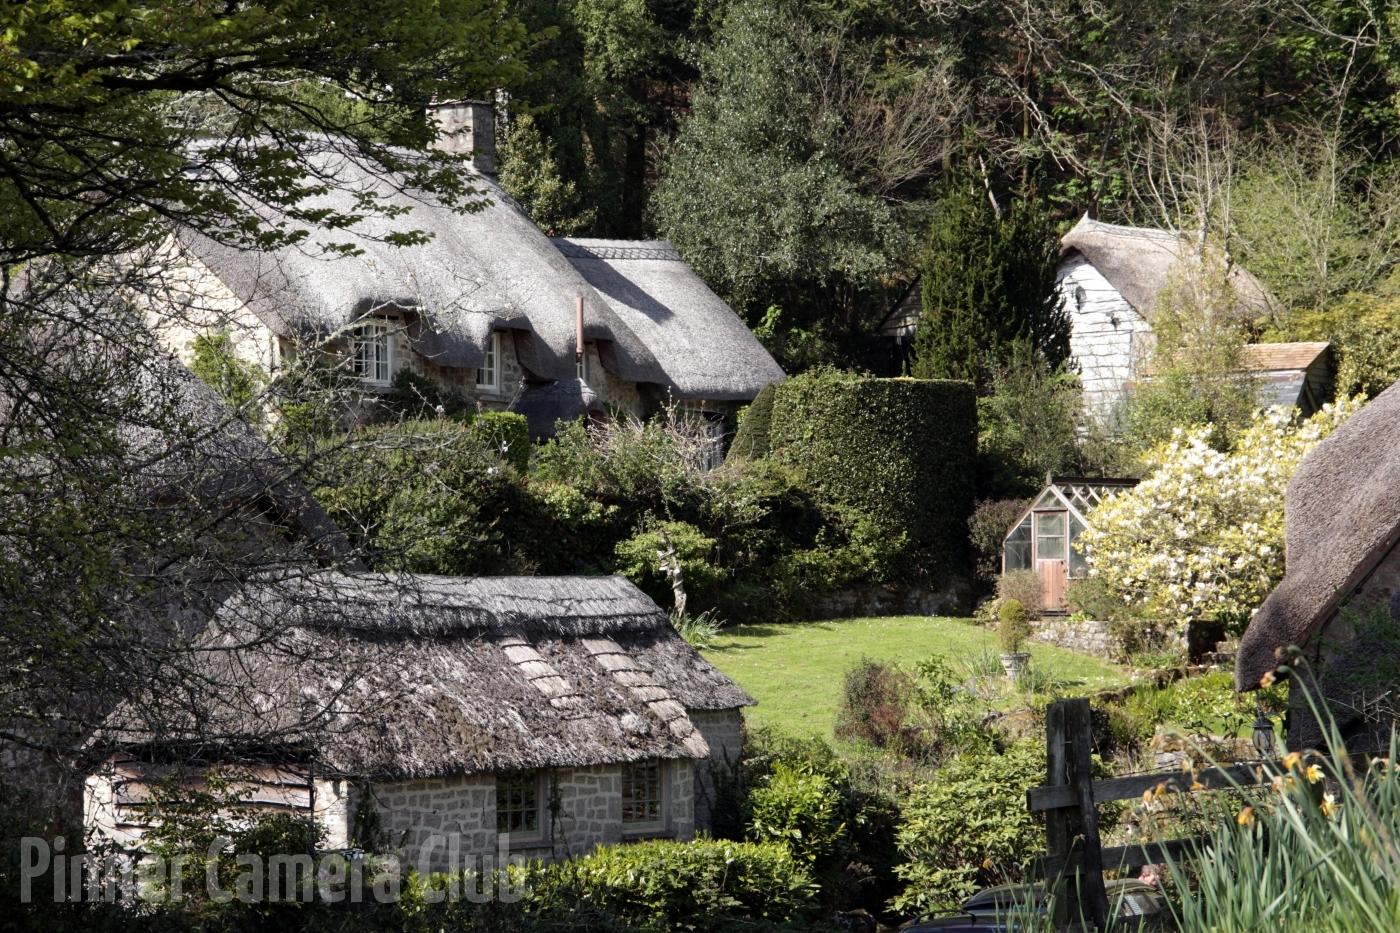 47. BONEHILL COTTAGES by Stephen Myers